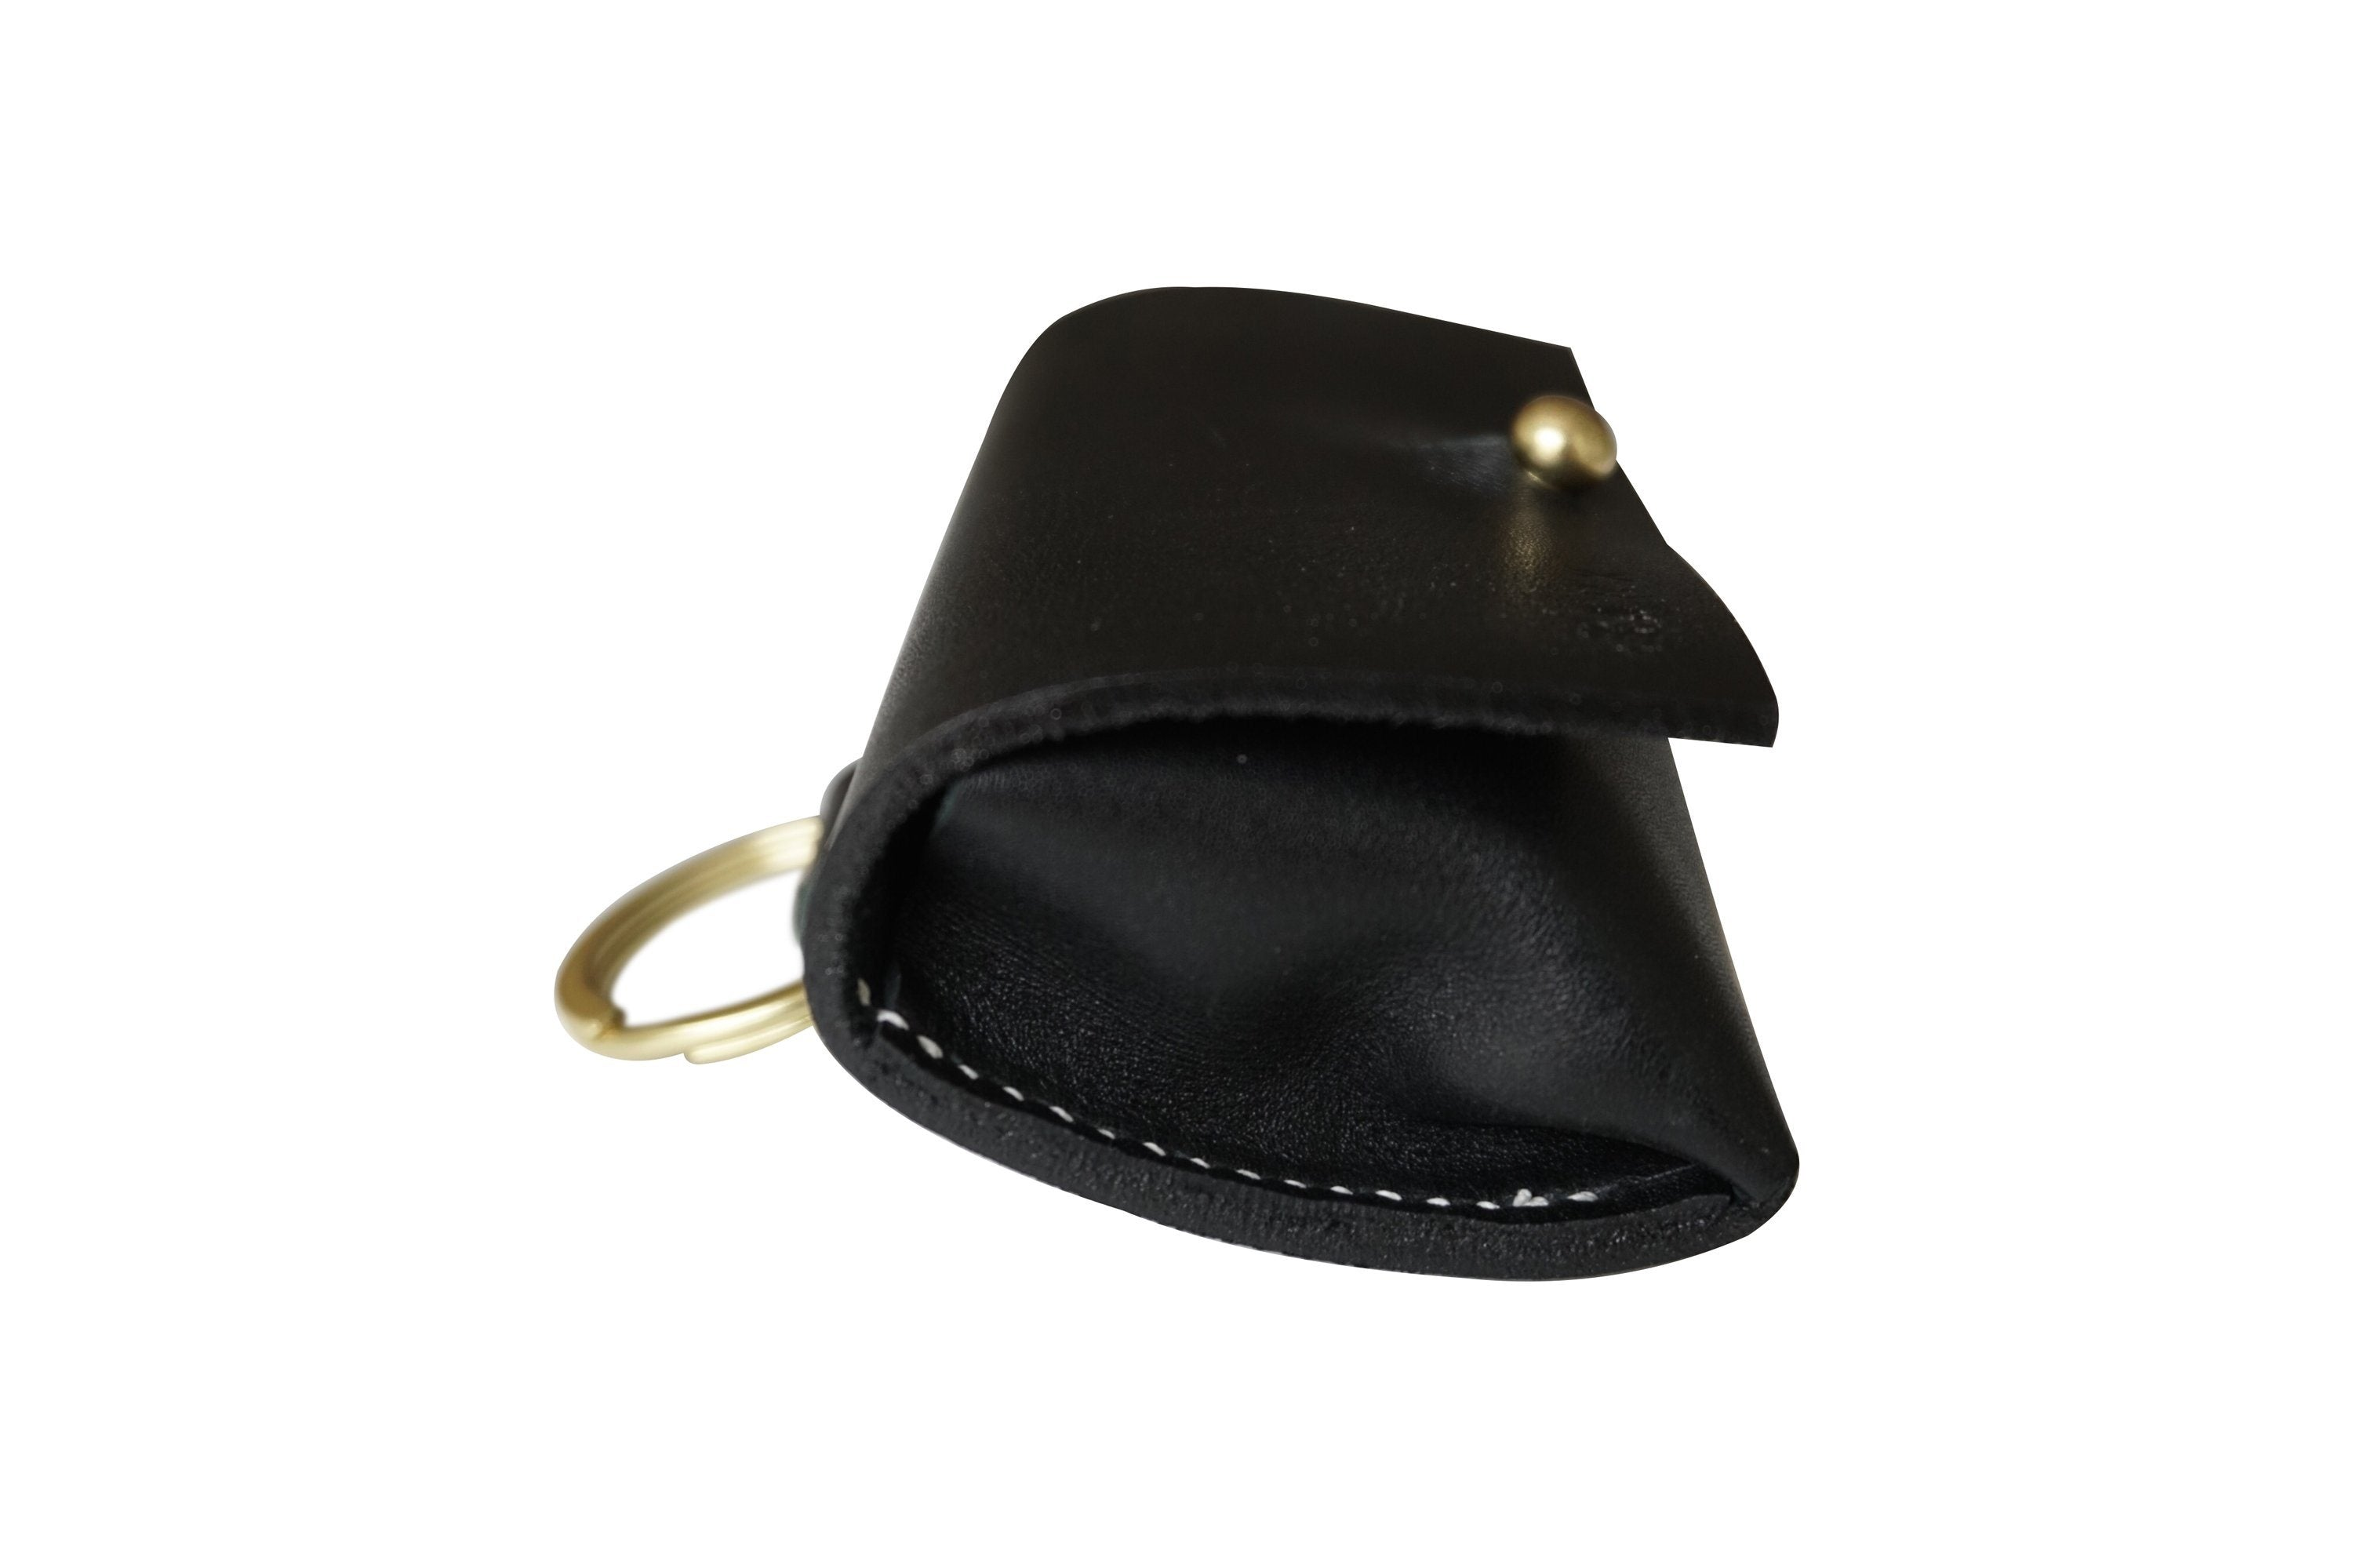 Black and Gold Leather Bag Dispenser - SHOP HARX